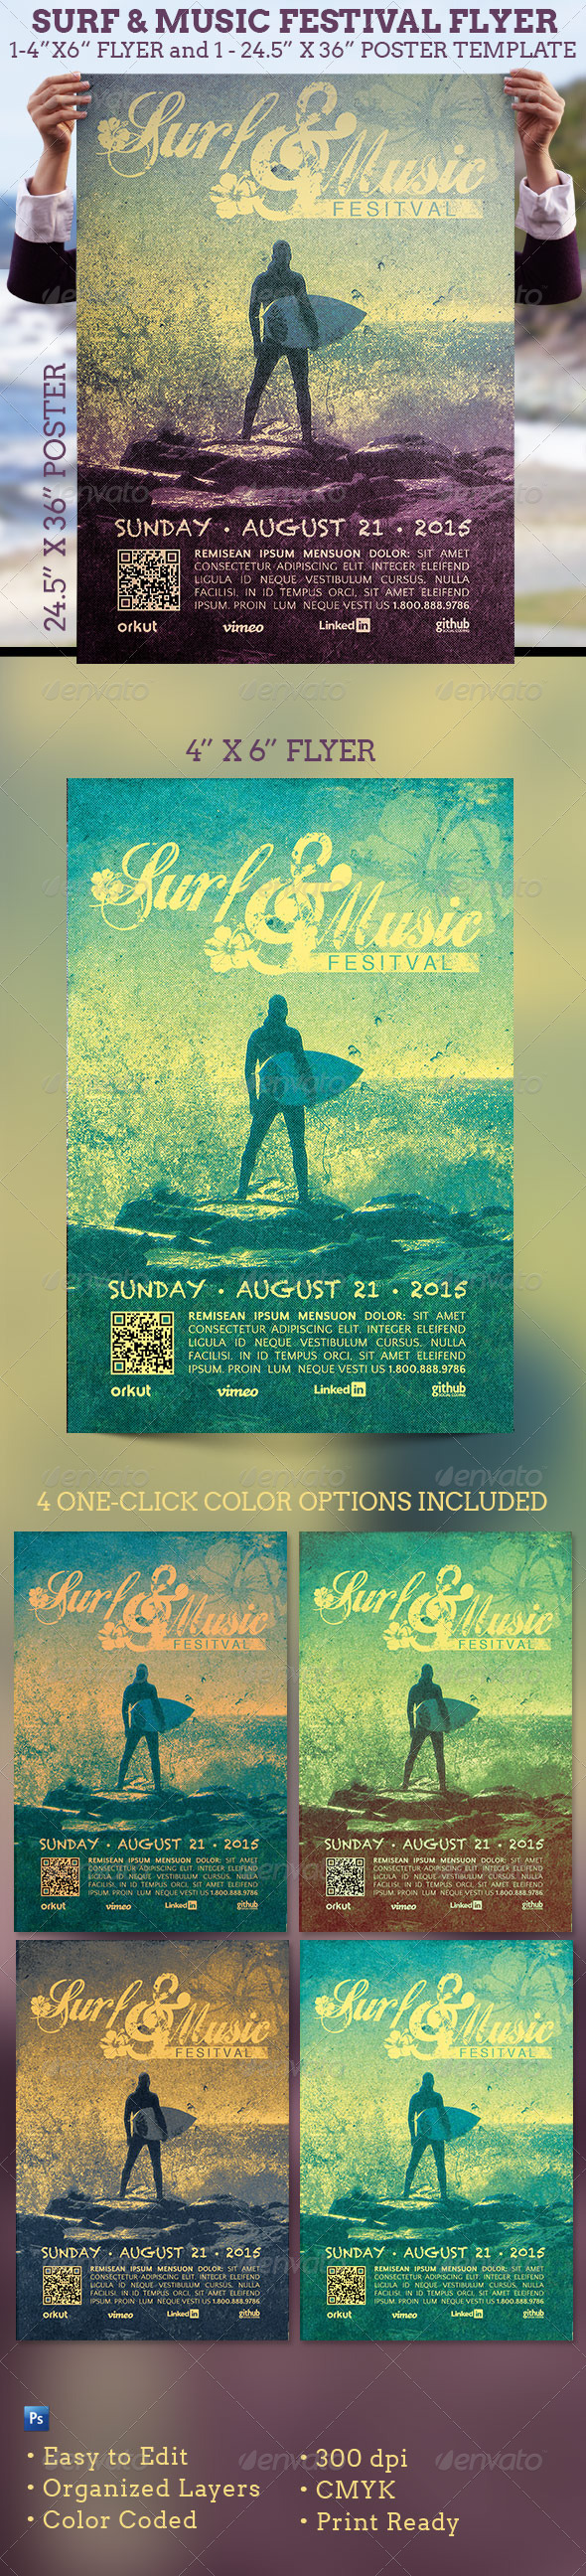 Surf Music Festival Flyer Plus Poster Template - Events Flyers